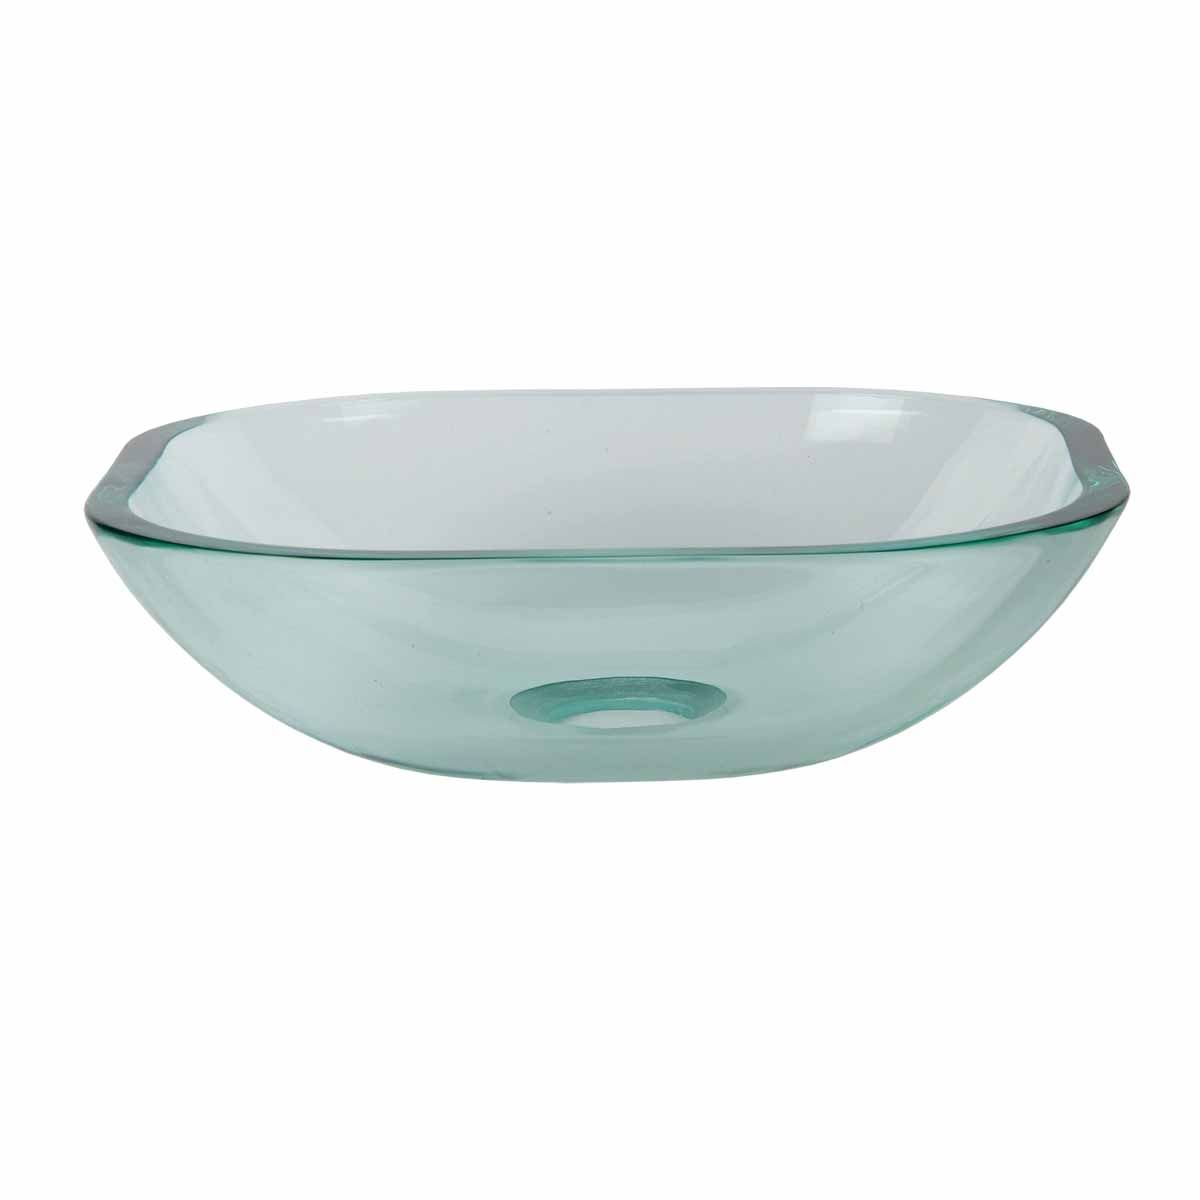 Item 17622 Mini Bathroom Glass Vessel Sink Square Small Bowl